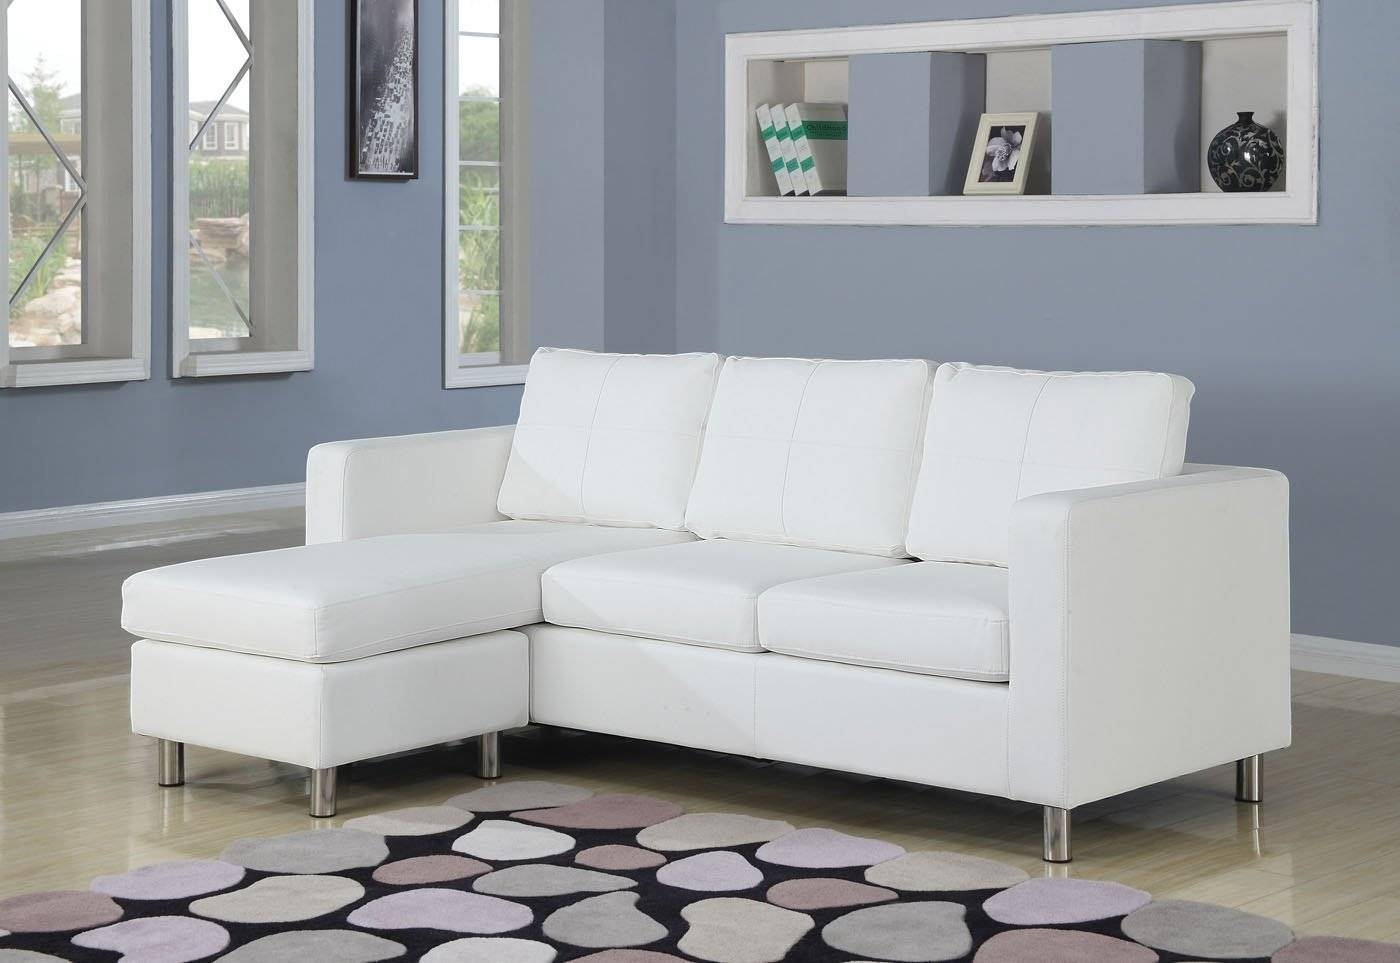 Ideal Small Sectional Sofa — Interior Home Design in Apartment Sectional Sofa With Chaise (Image 24 of 30)